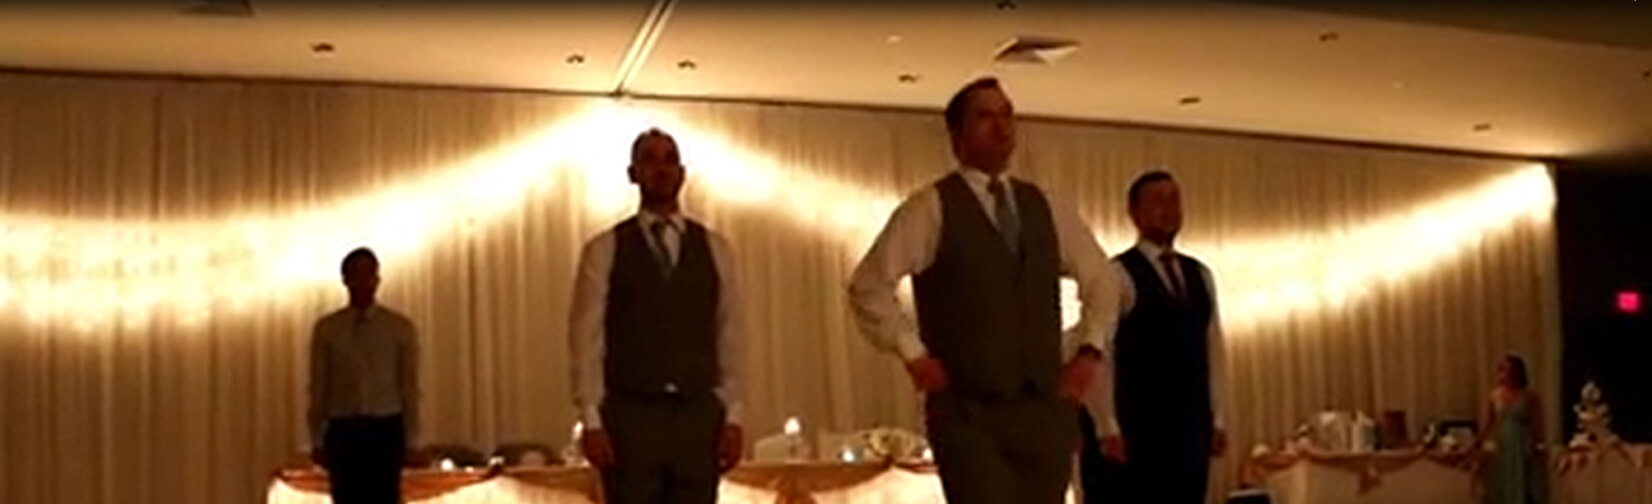 Groom and Groomsmen CLEAR the Wedding Dance Floor